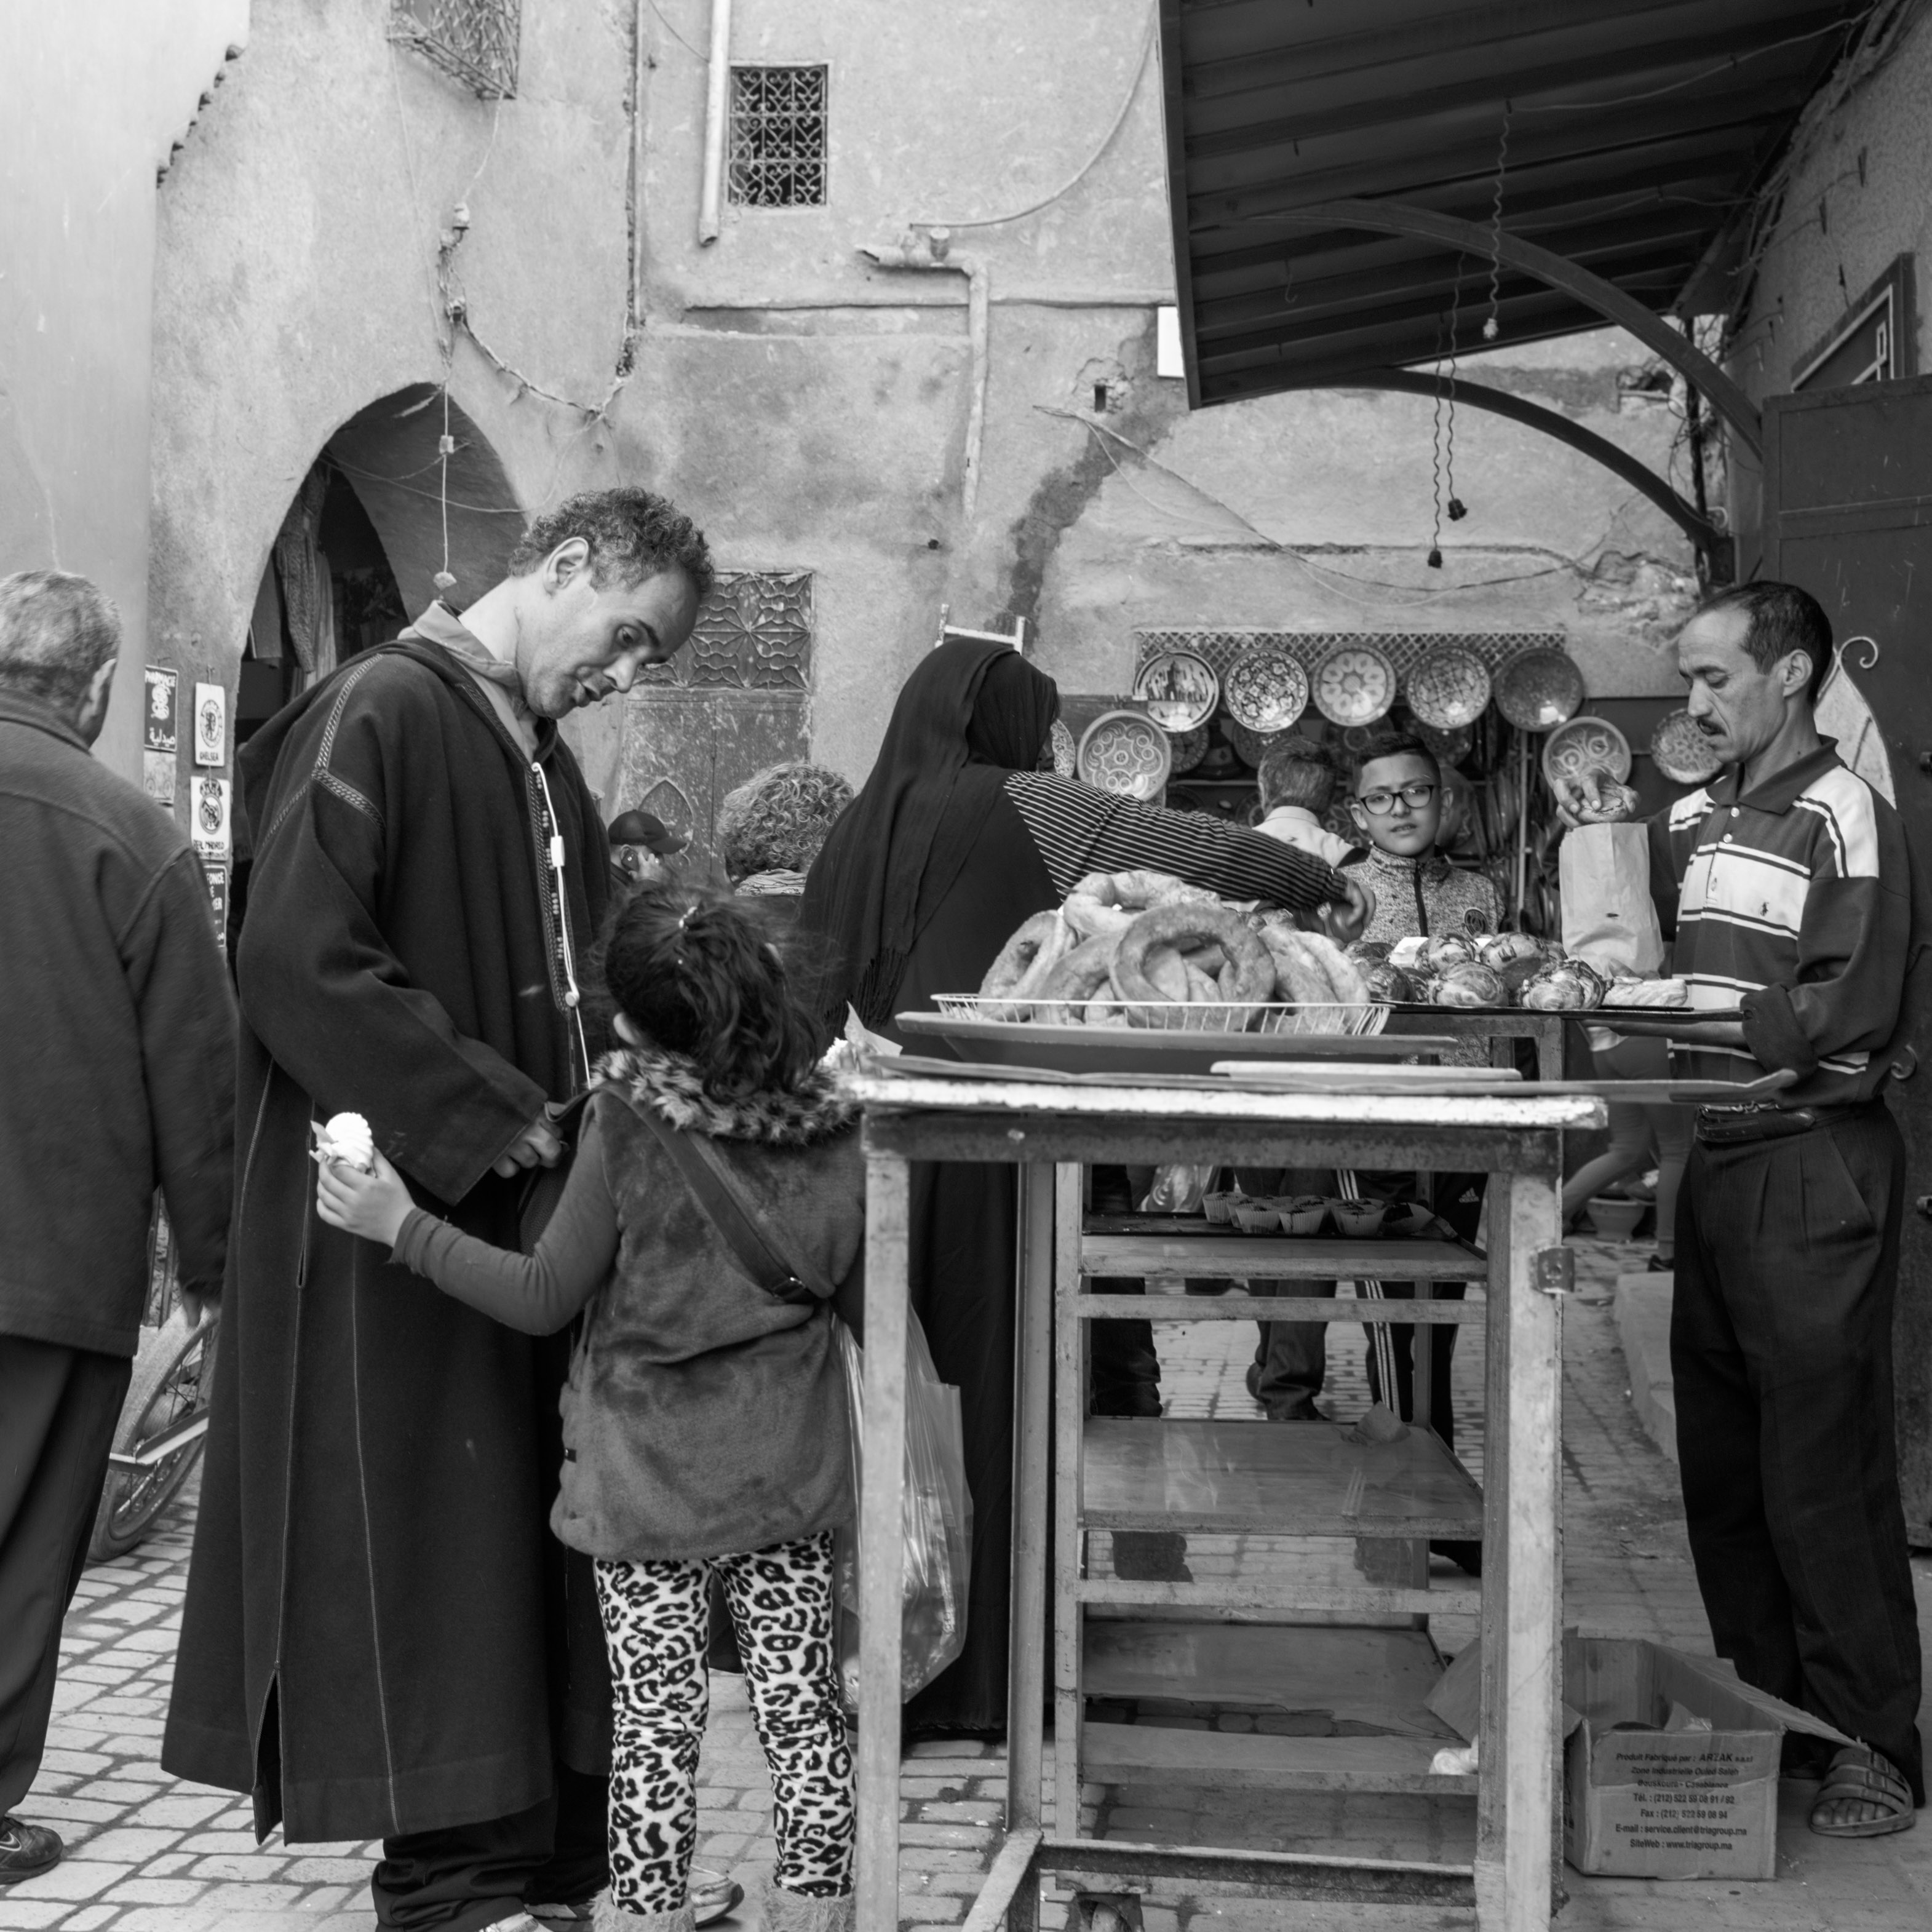 Please dad at Marrakech-Medina (Marrakesh, Morocco) with Leica M Monochrom (Leica Summilux-M 35mm f/1.4 ASPH.) by Magnus L Andersson (photography.anderssoneklund.se) at 2017-03-26 16:32:00